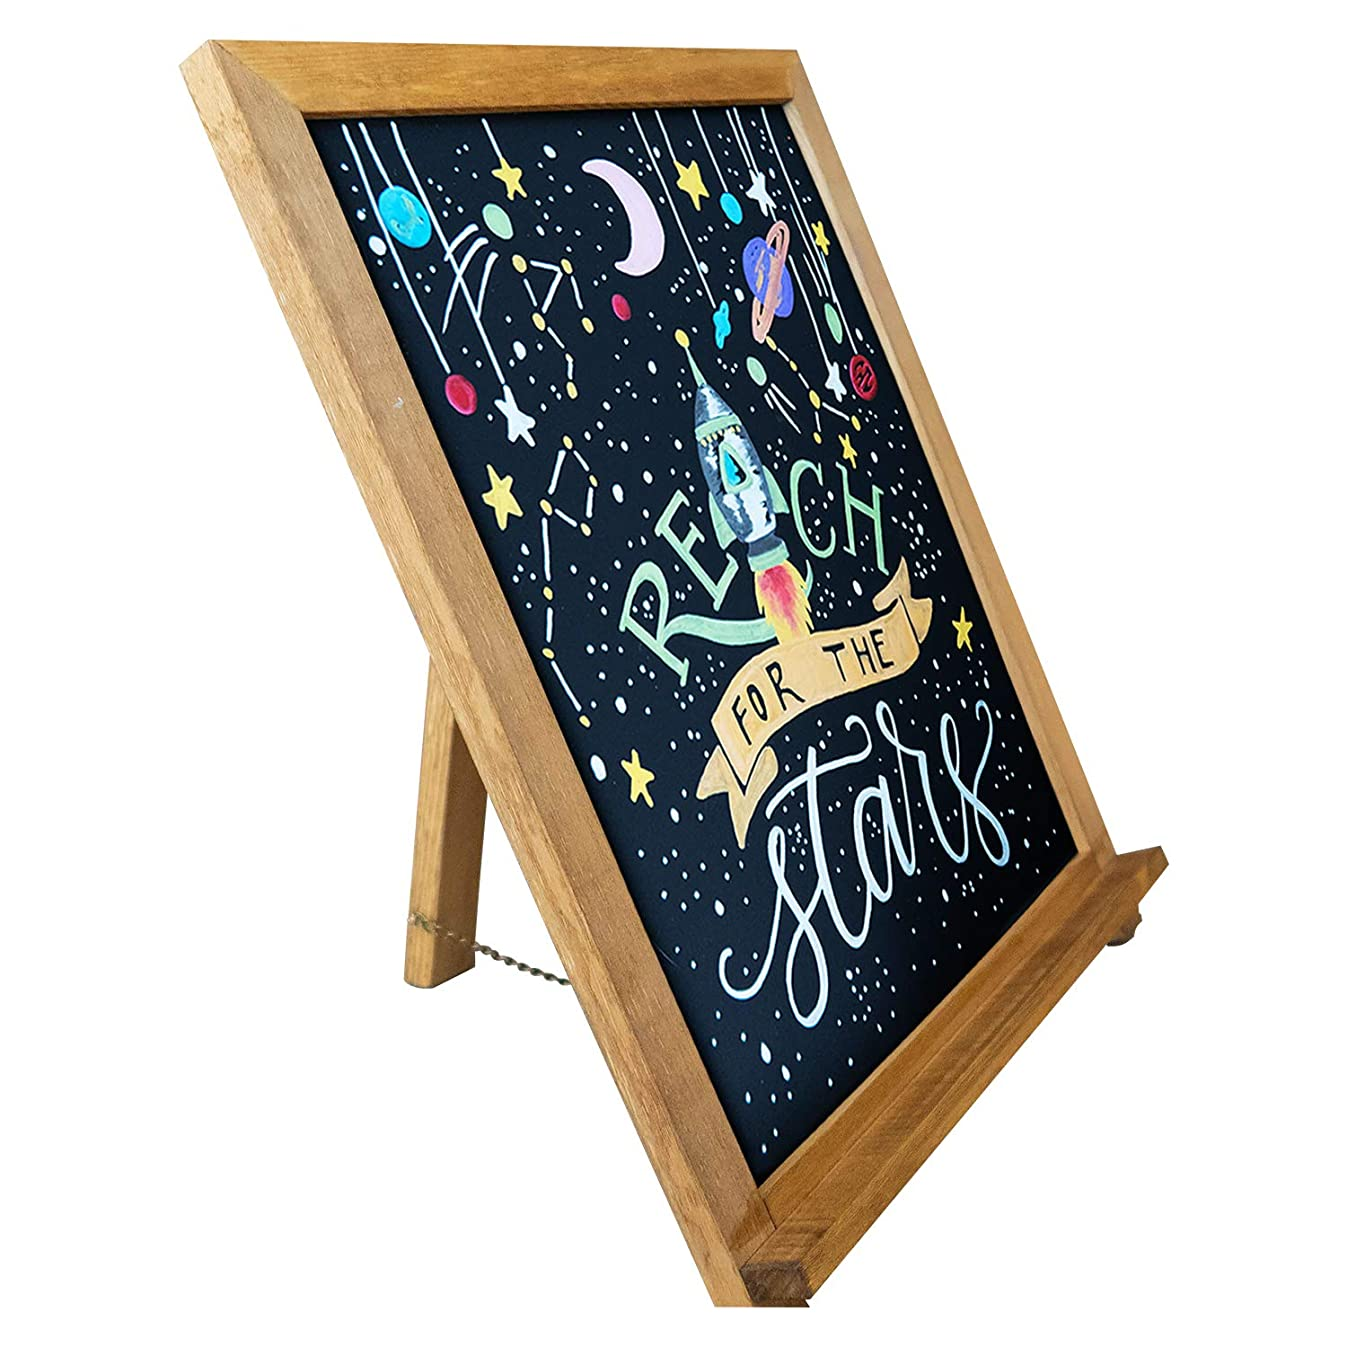 Rustic Chalkboard Sign | Smooth Wooden Frame with Non-Porous Magnetic Surface for Home Decor, Kitchen, Wedding, Restaurants & Bar Table Top (15